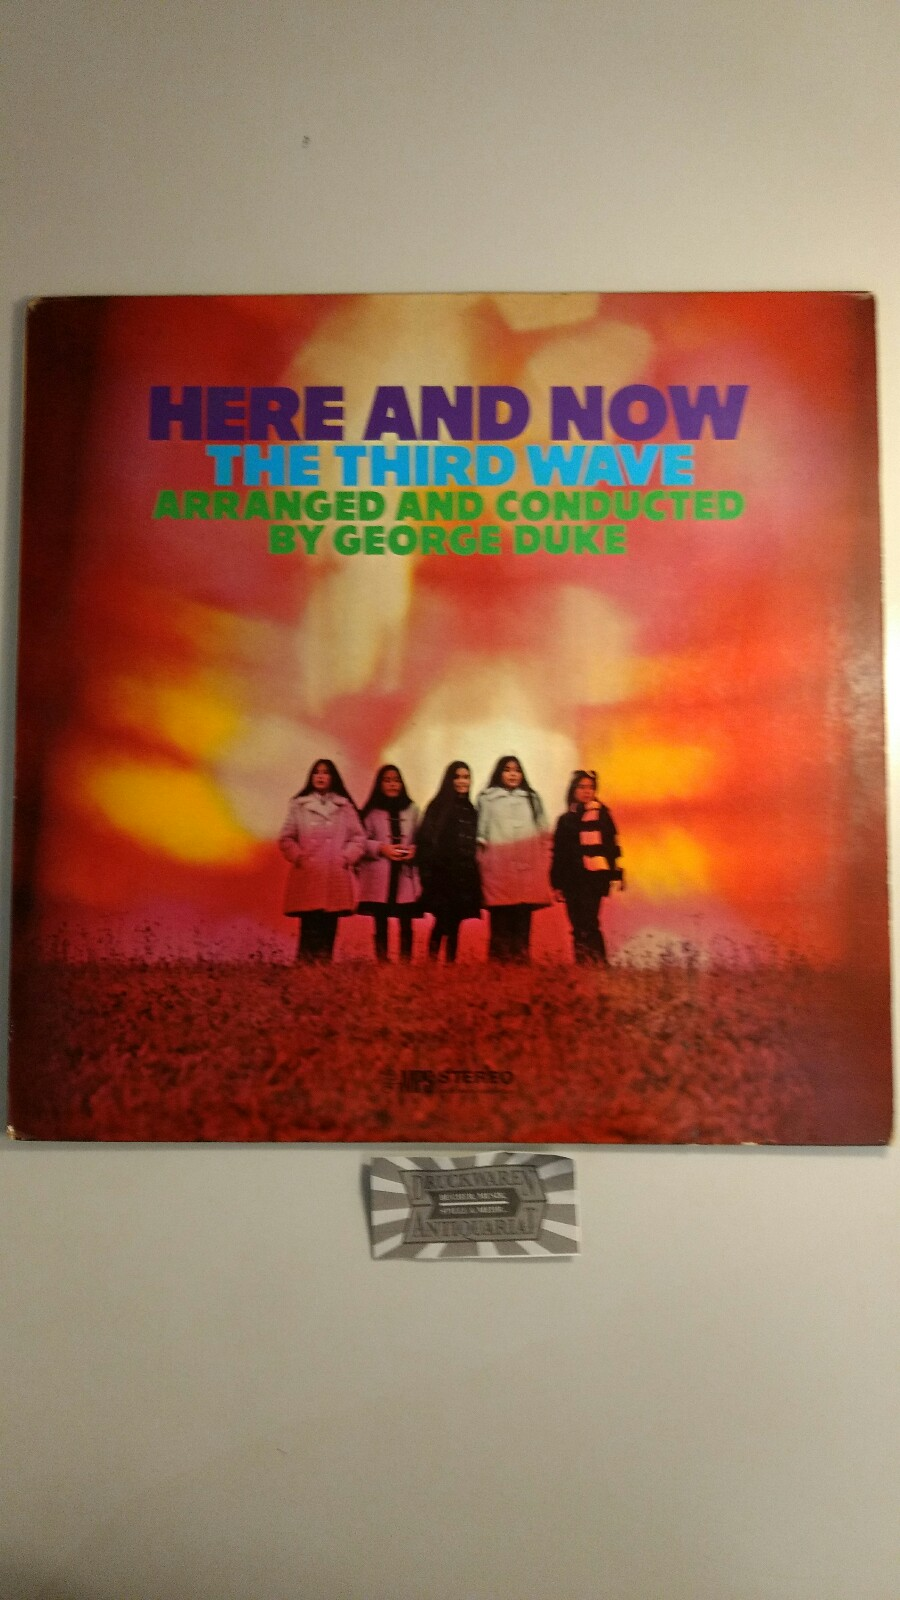 The Third Wave and George Duke [Arr.]: Here and Now [Vinyl, LP, MPS 14 263 ST].